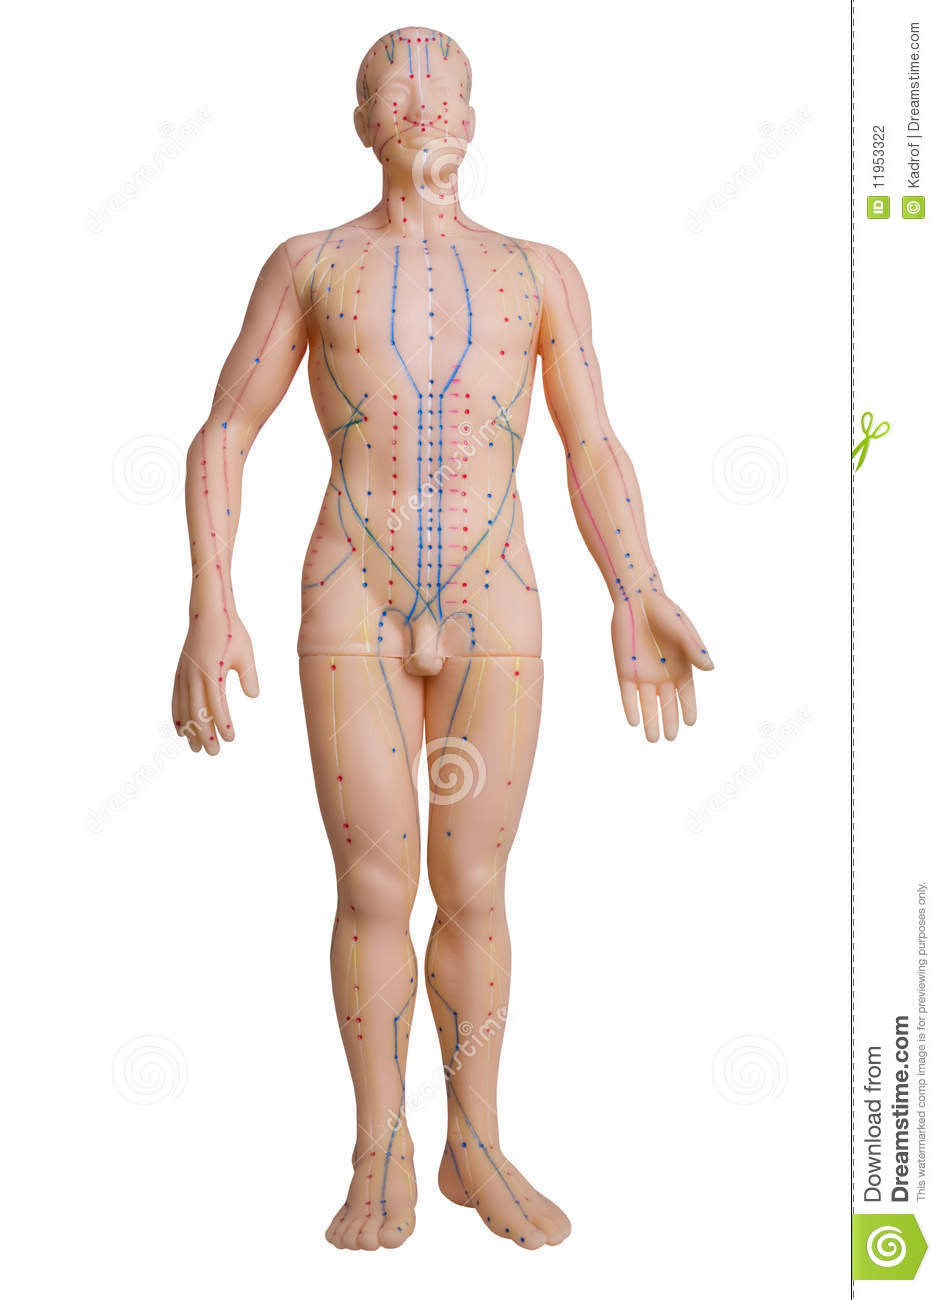 Rubber Mannequin With Massage Pressure Points Stock Photo Image Of